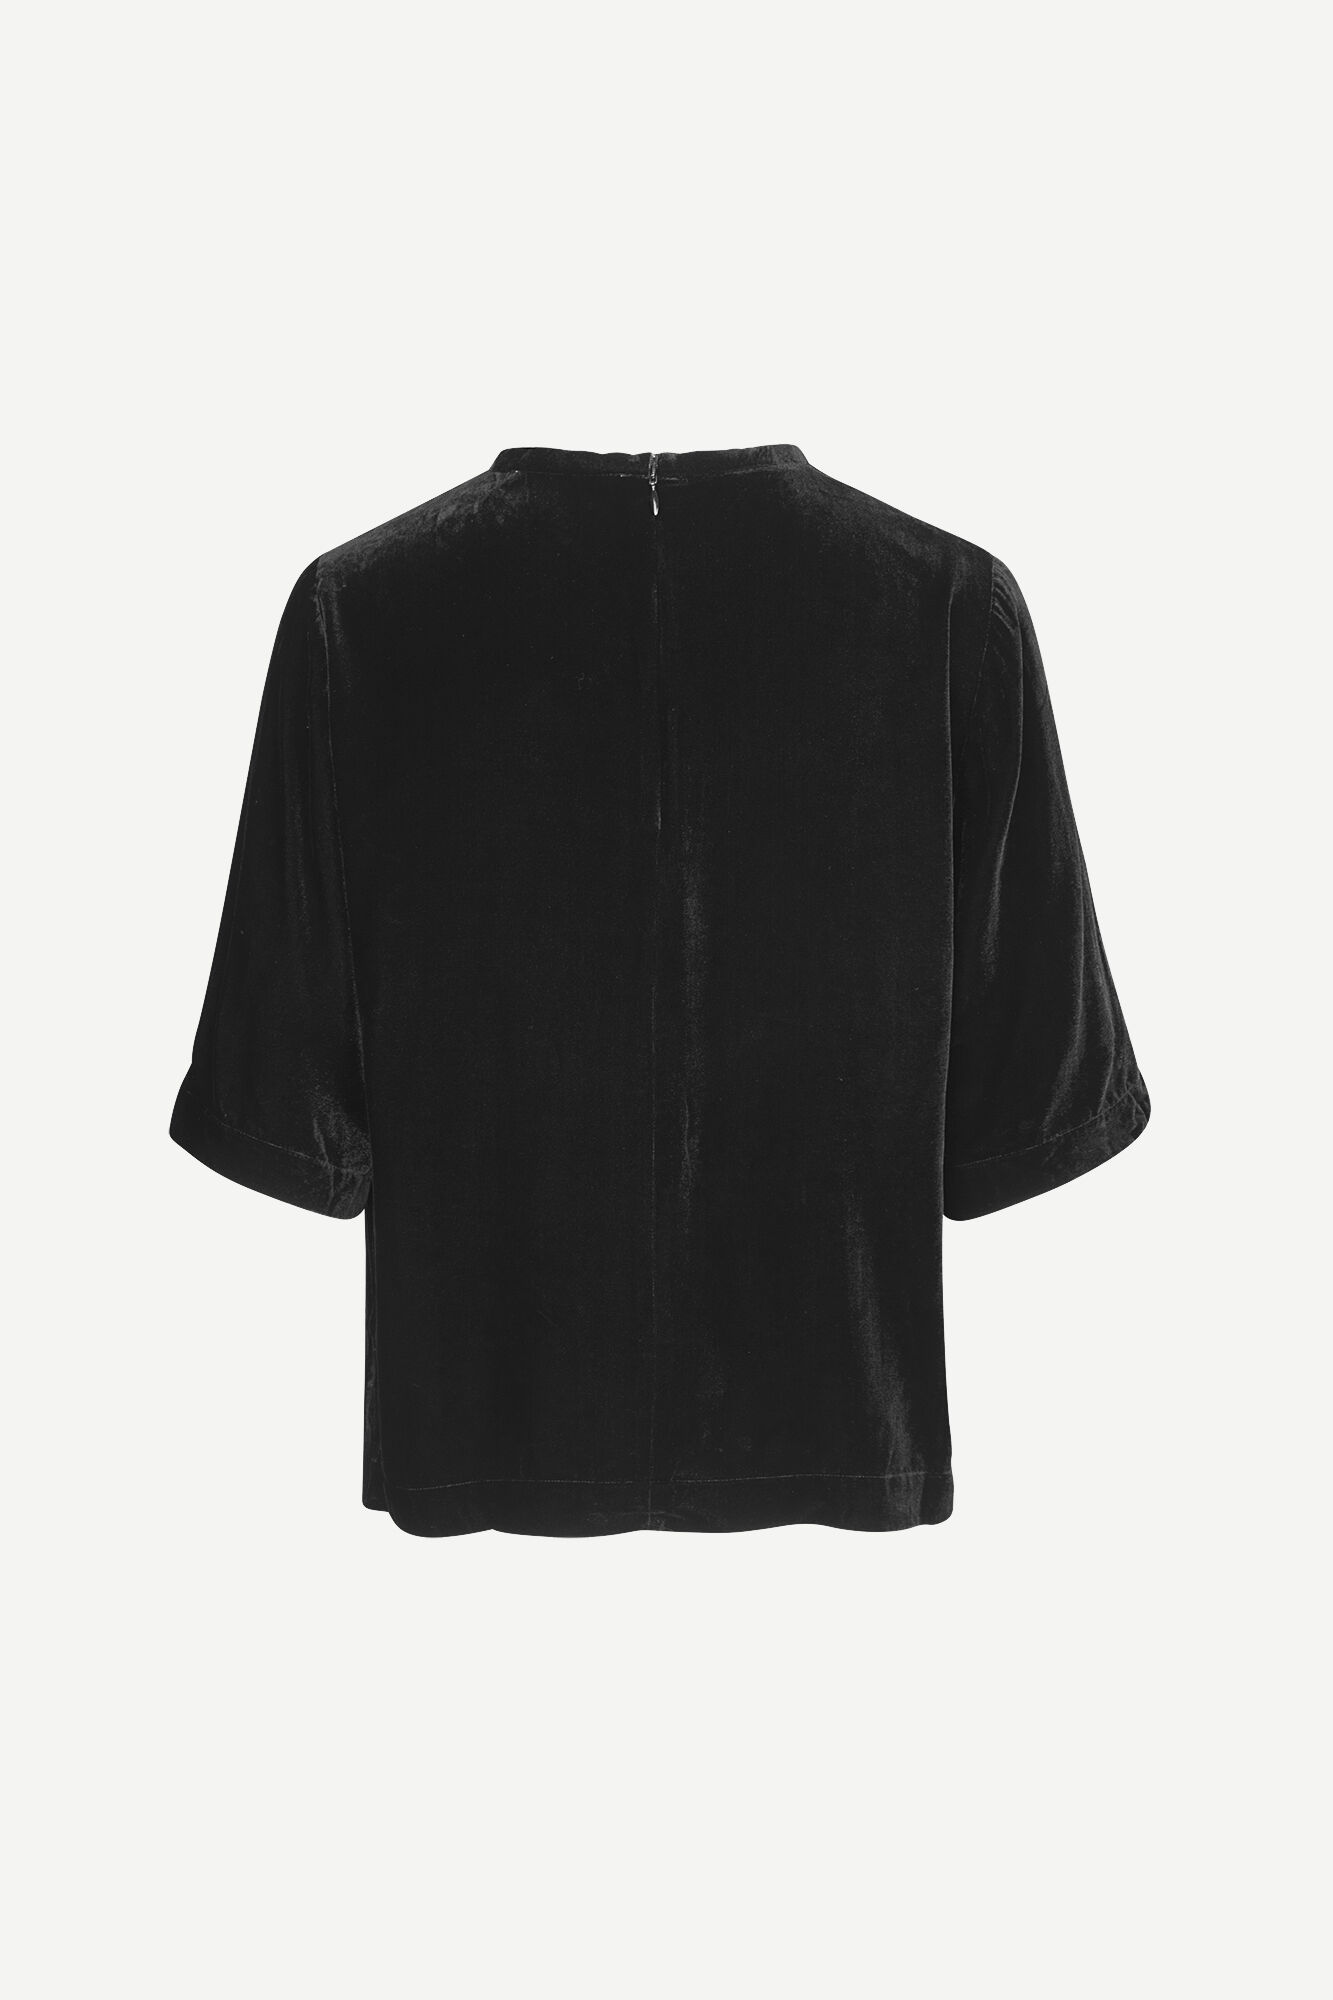 Isabel blouse ss 6627